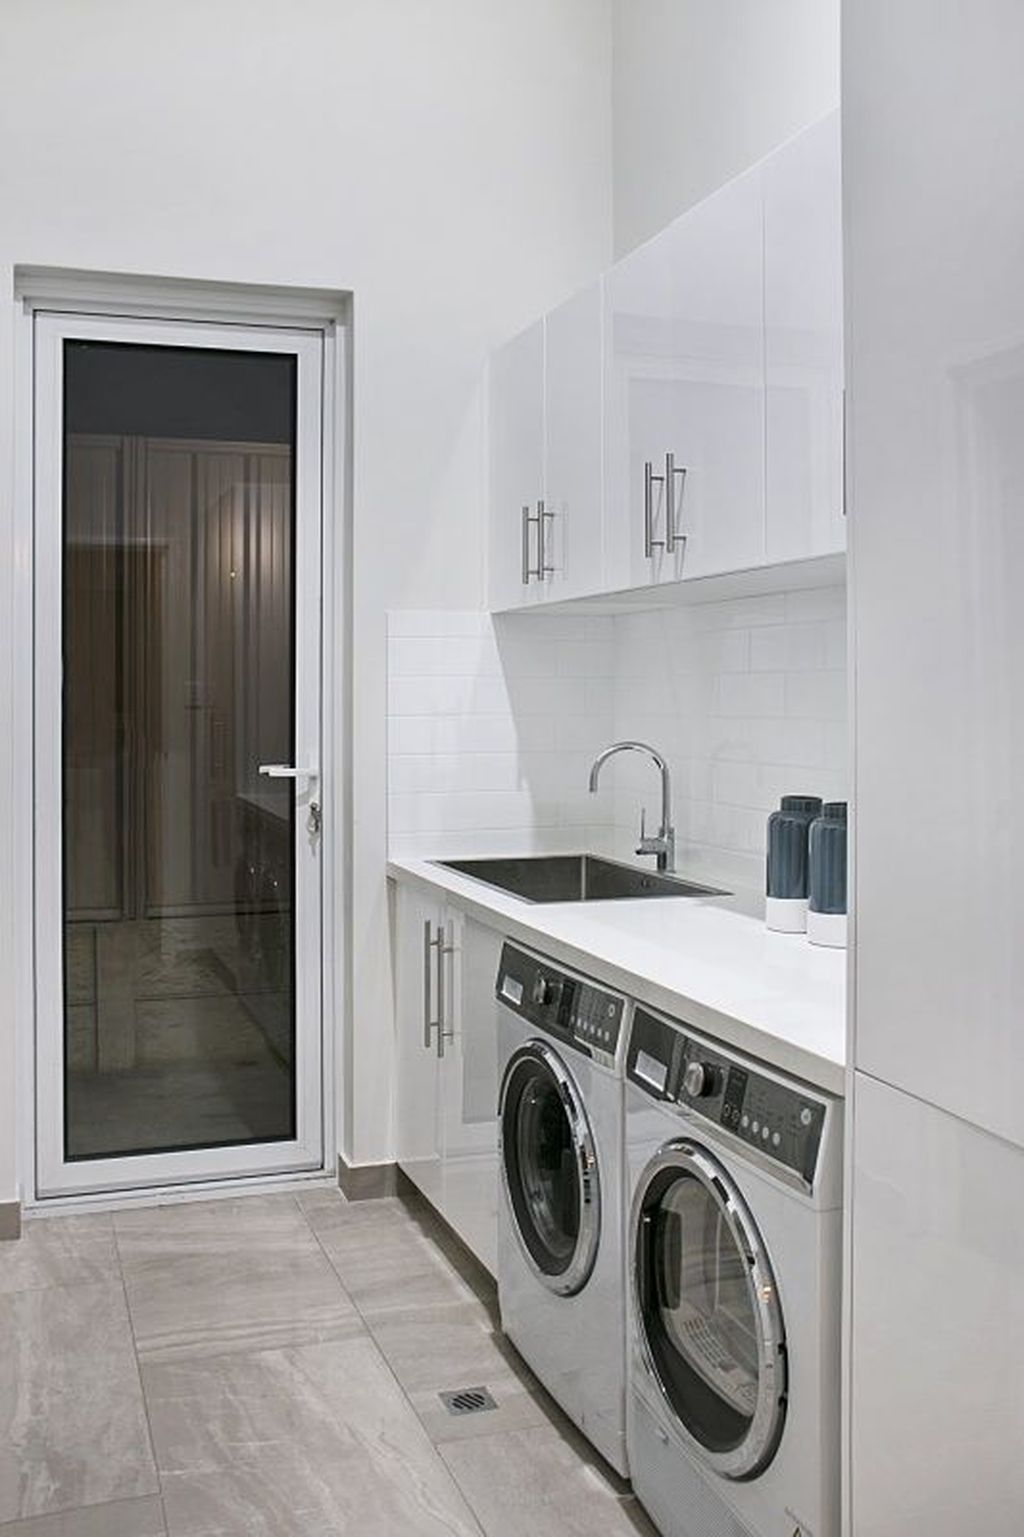 30 minimalist and small laundry room ideas for small on extraordinary small laundry room design and decorating ideas modest laundry space id=28808